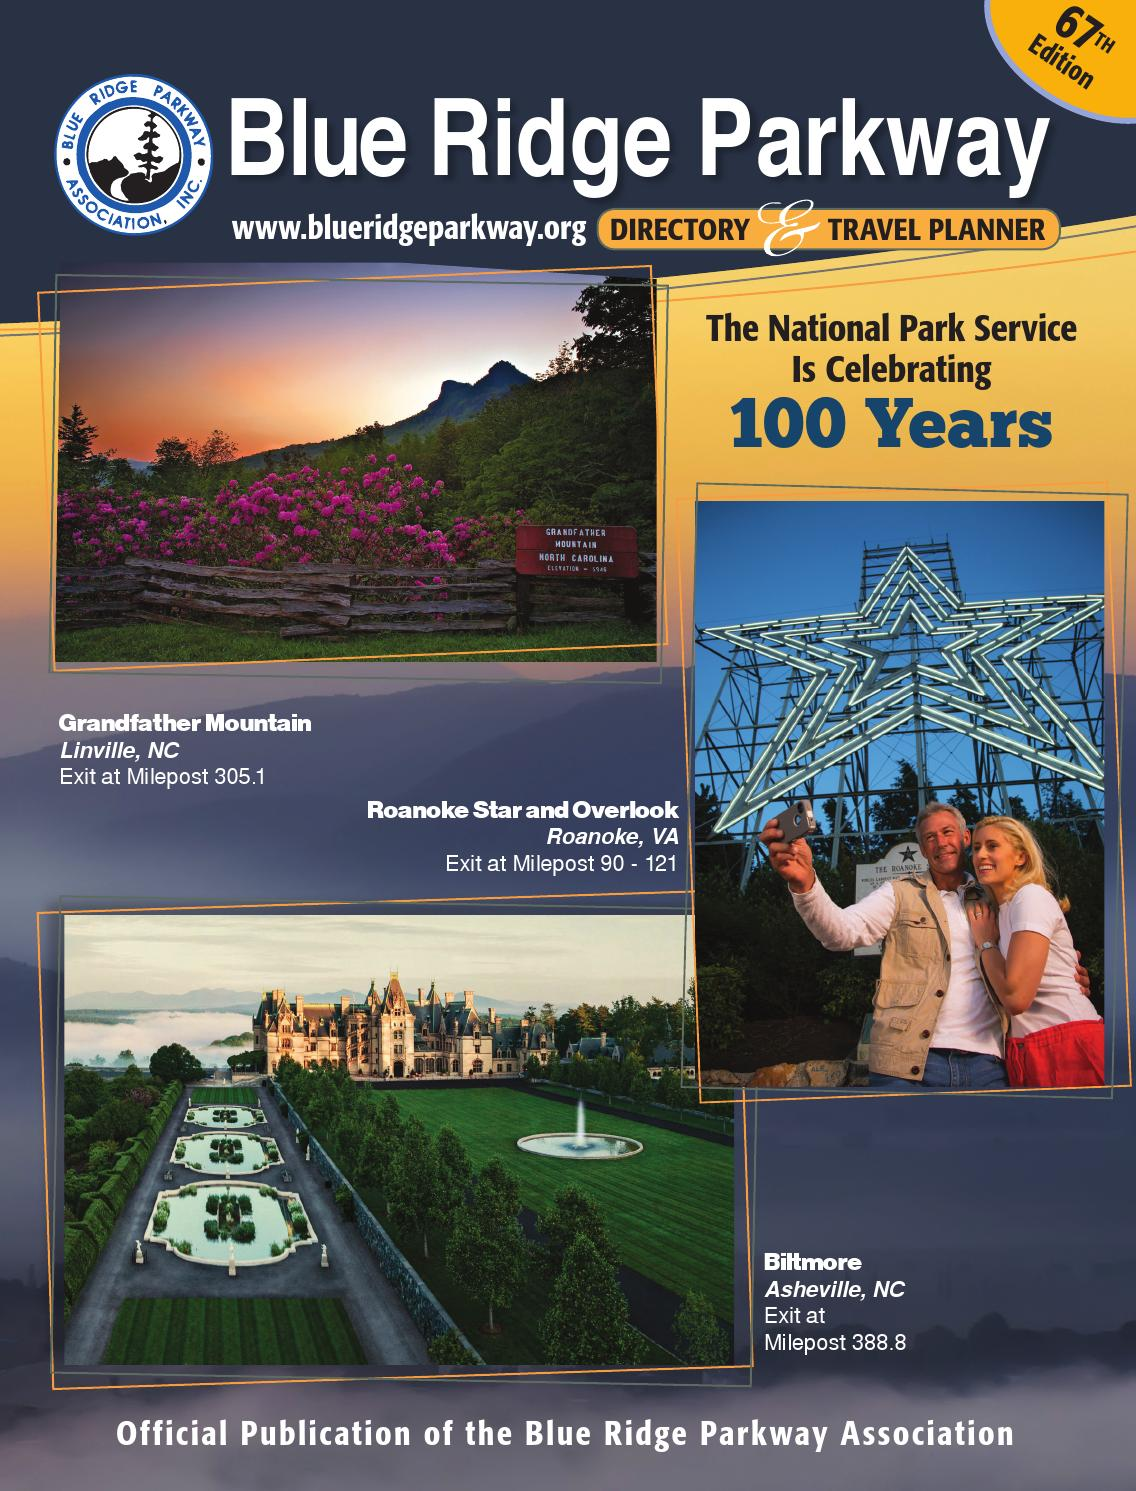 504637ae5a7 Blue Ridge Parkway Directory   Travel Planner - 67th Edition by Blue Ridge  Parkway Association - issuu